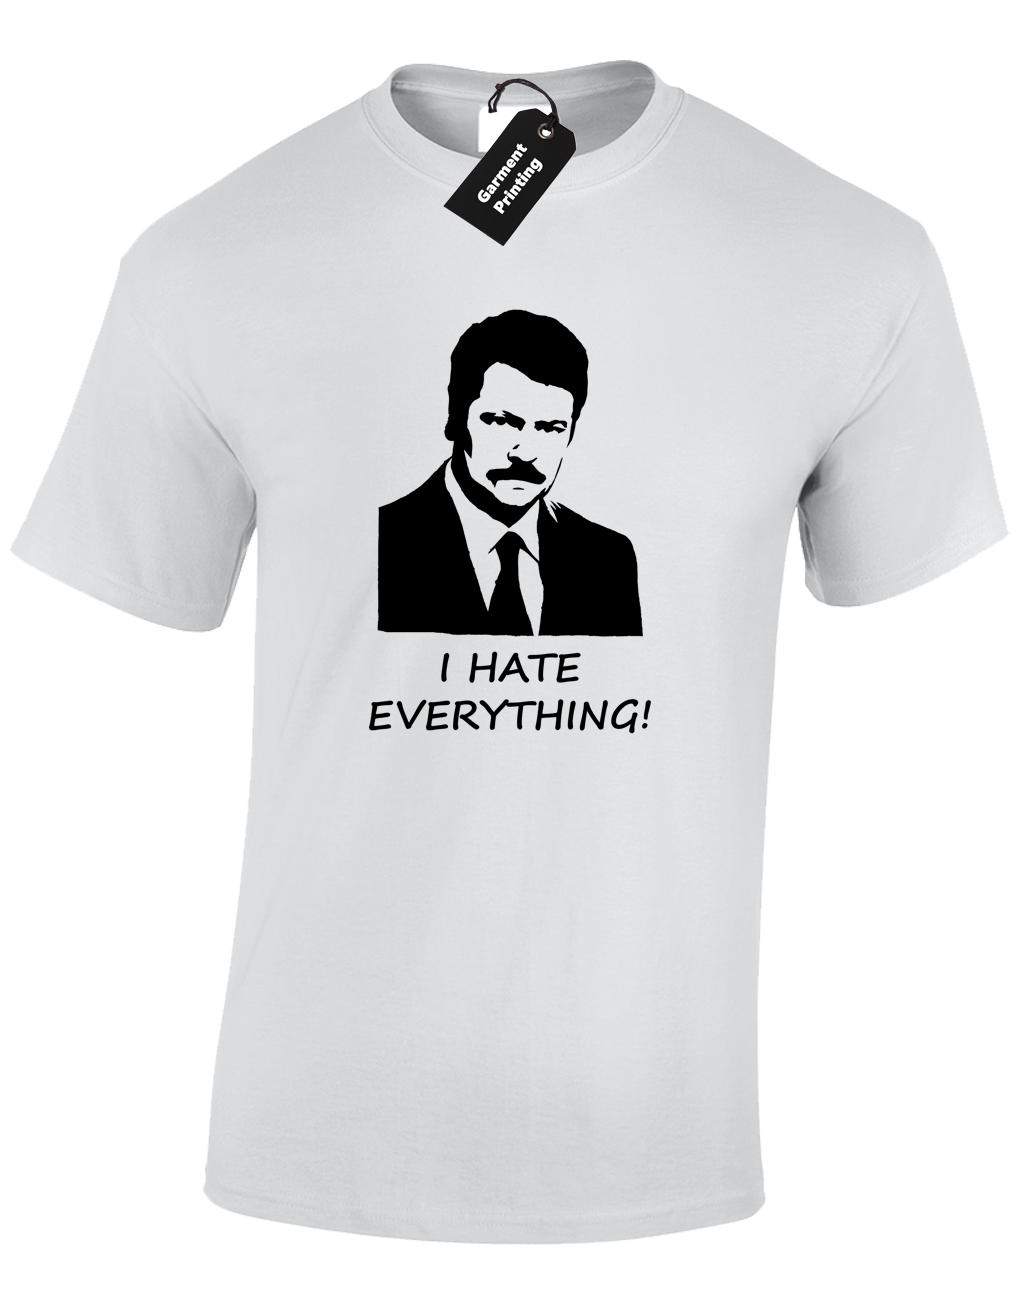 bae8cebe51ea RON SWANSON I HATE EVERYTHING MENS T SHIRT FUNNY PARKS RECREATION TOP S 5XL Short  Sleeve Plus Size T Shirt Funny T Shirts For Men Make T Shirts From ...